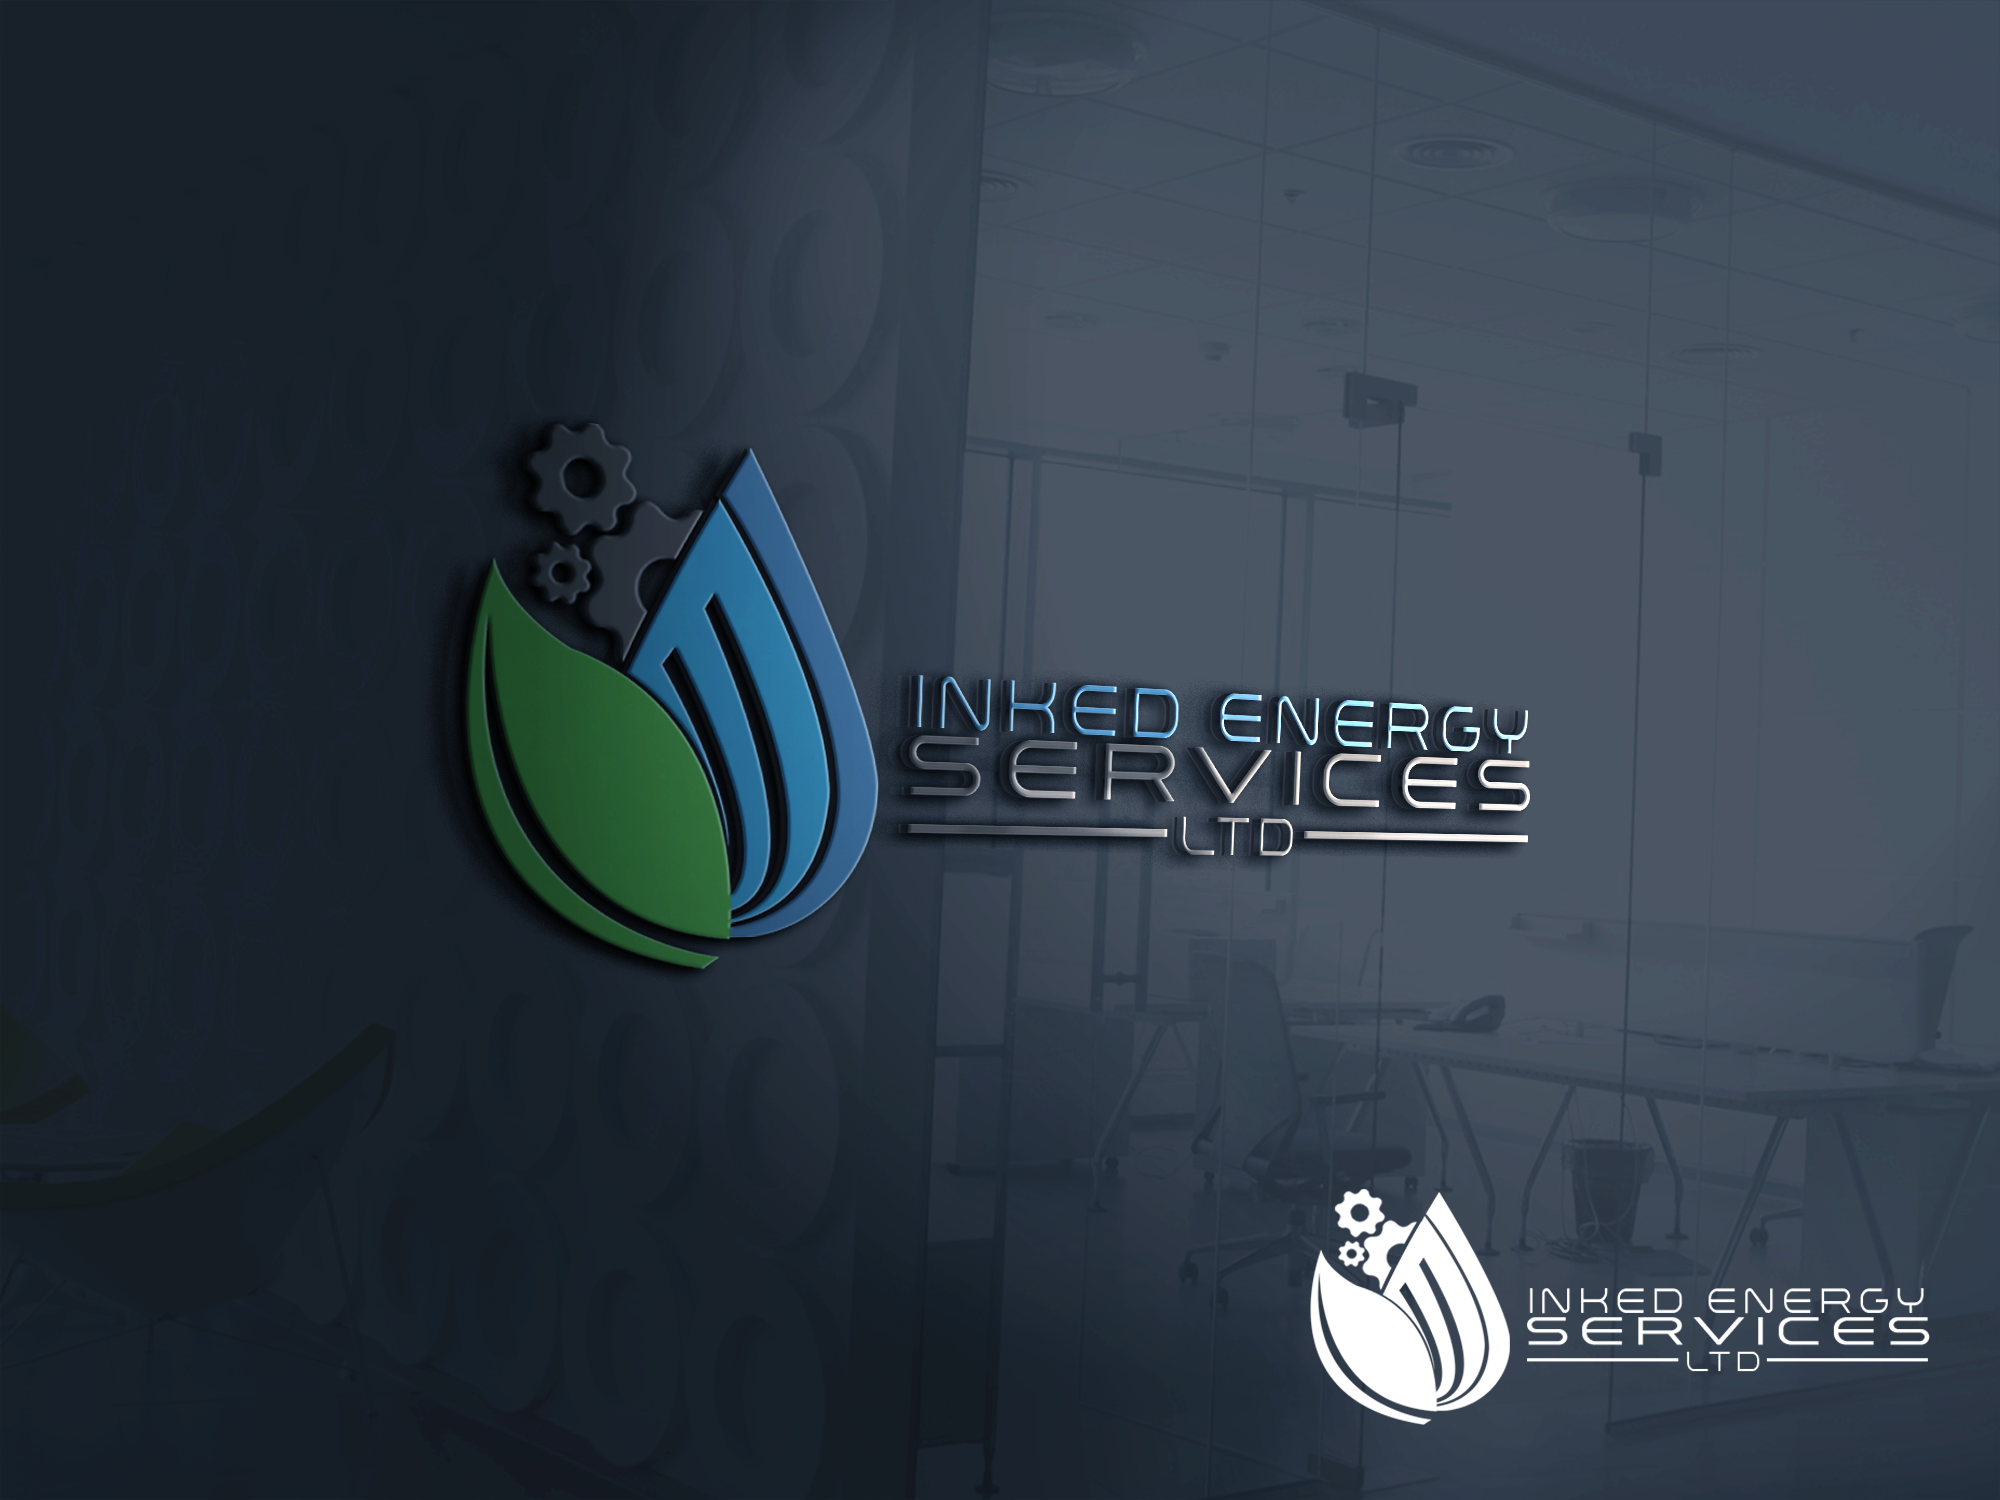 Logo Design by John Melvie Sulla - Entry No. 57 in the Logo Design Contest Creative Logo Design for INKED ENERGY SERVICES LTD.